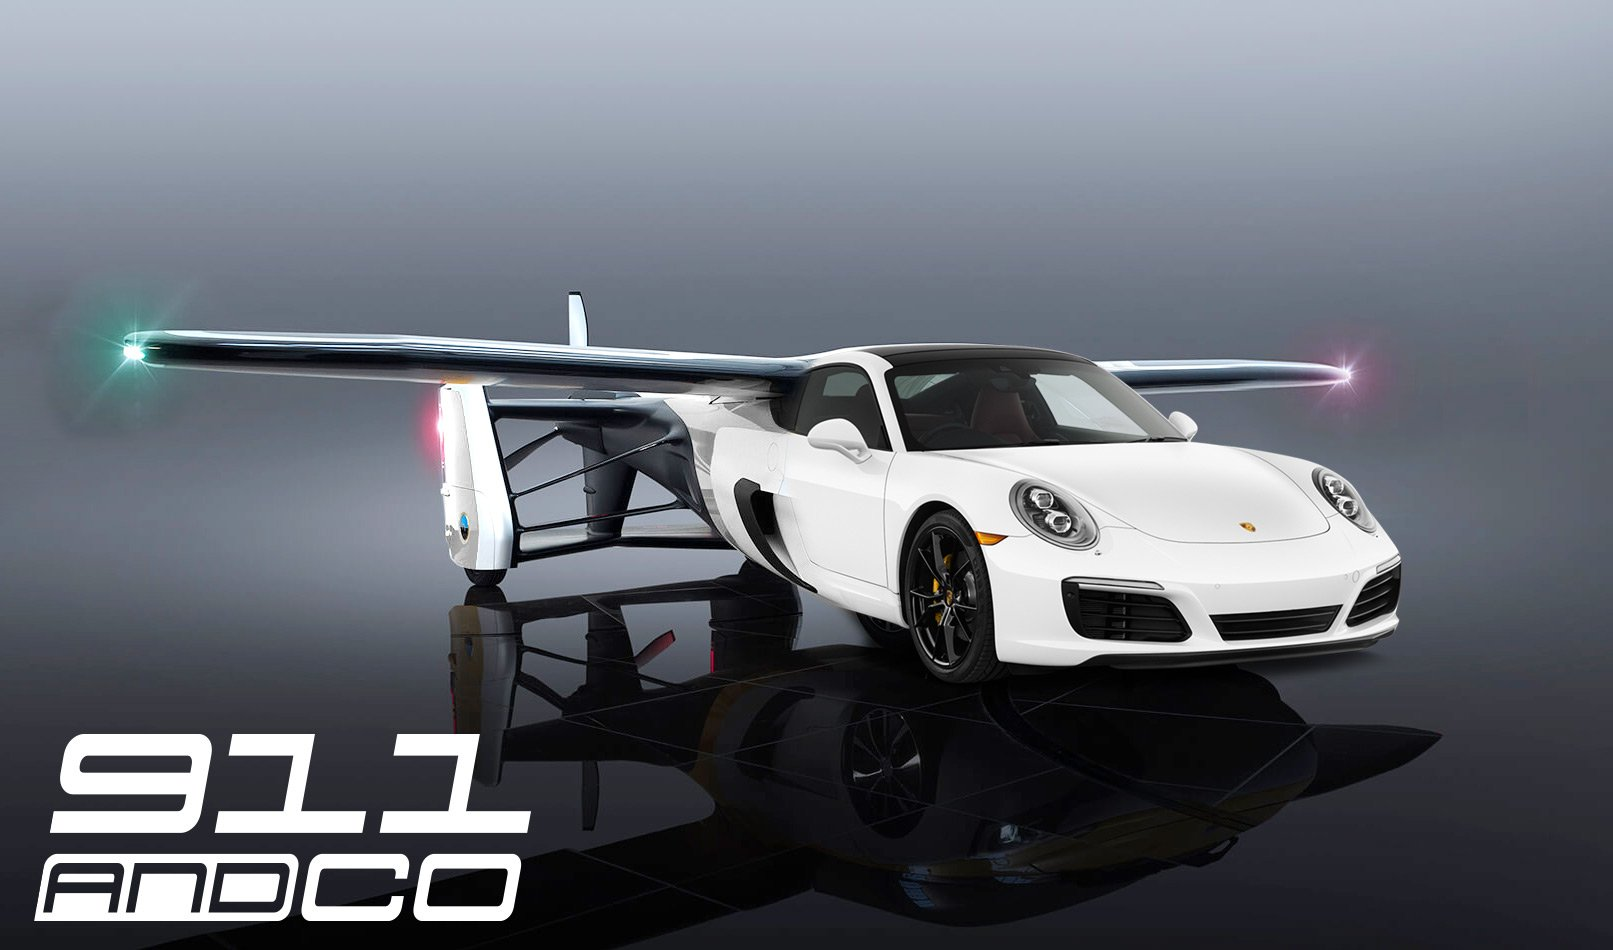 des taxis volants et autonomes porsche y travaille d j. Black Bedroom Furniture Sets. Home Design Ideas